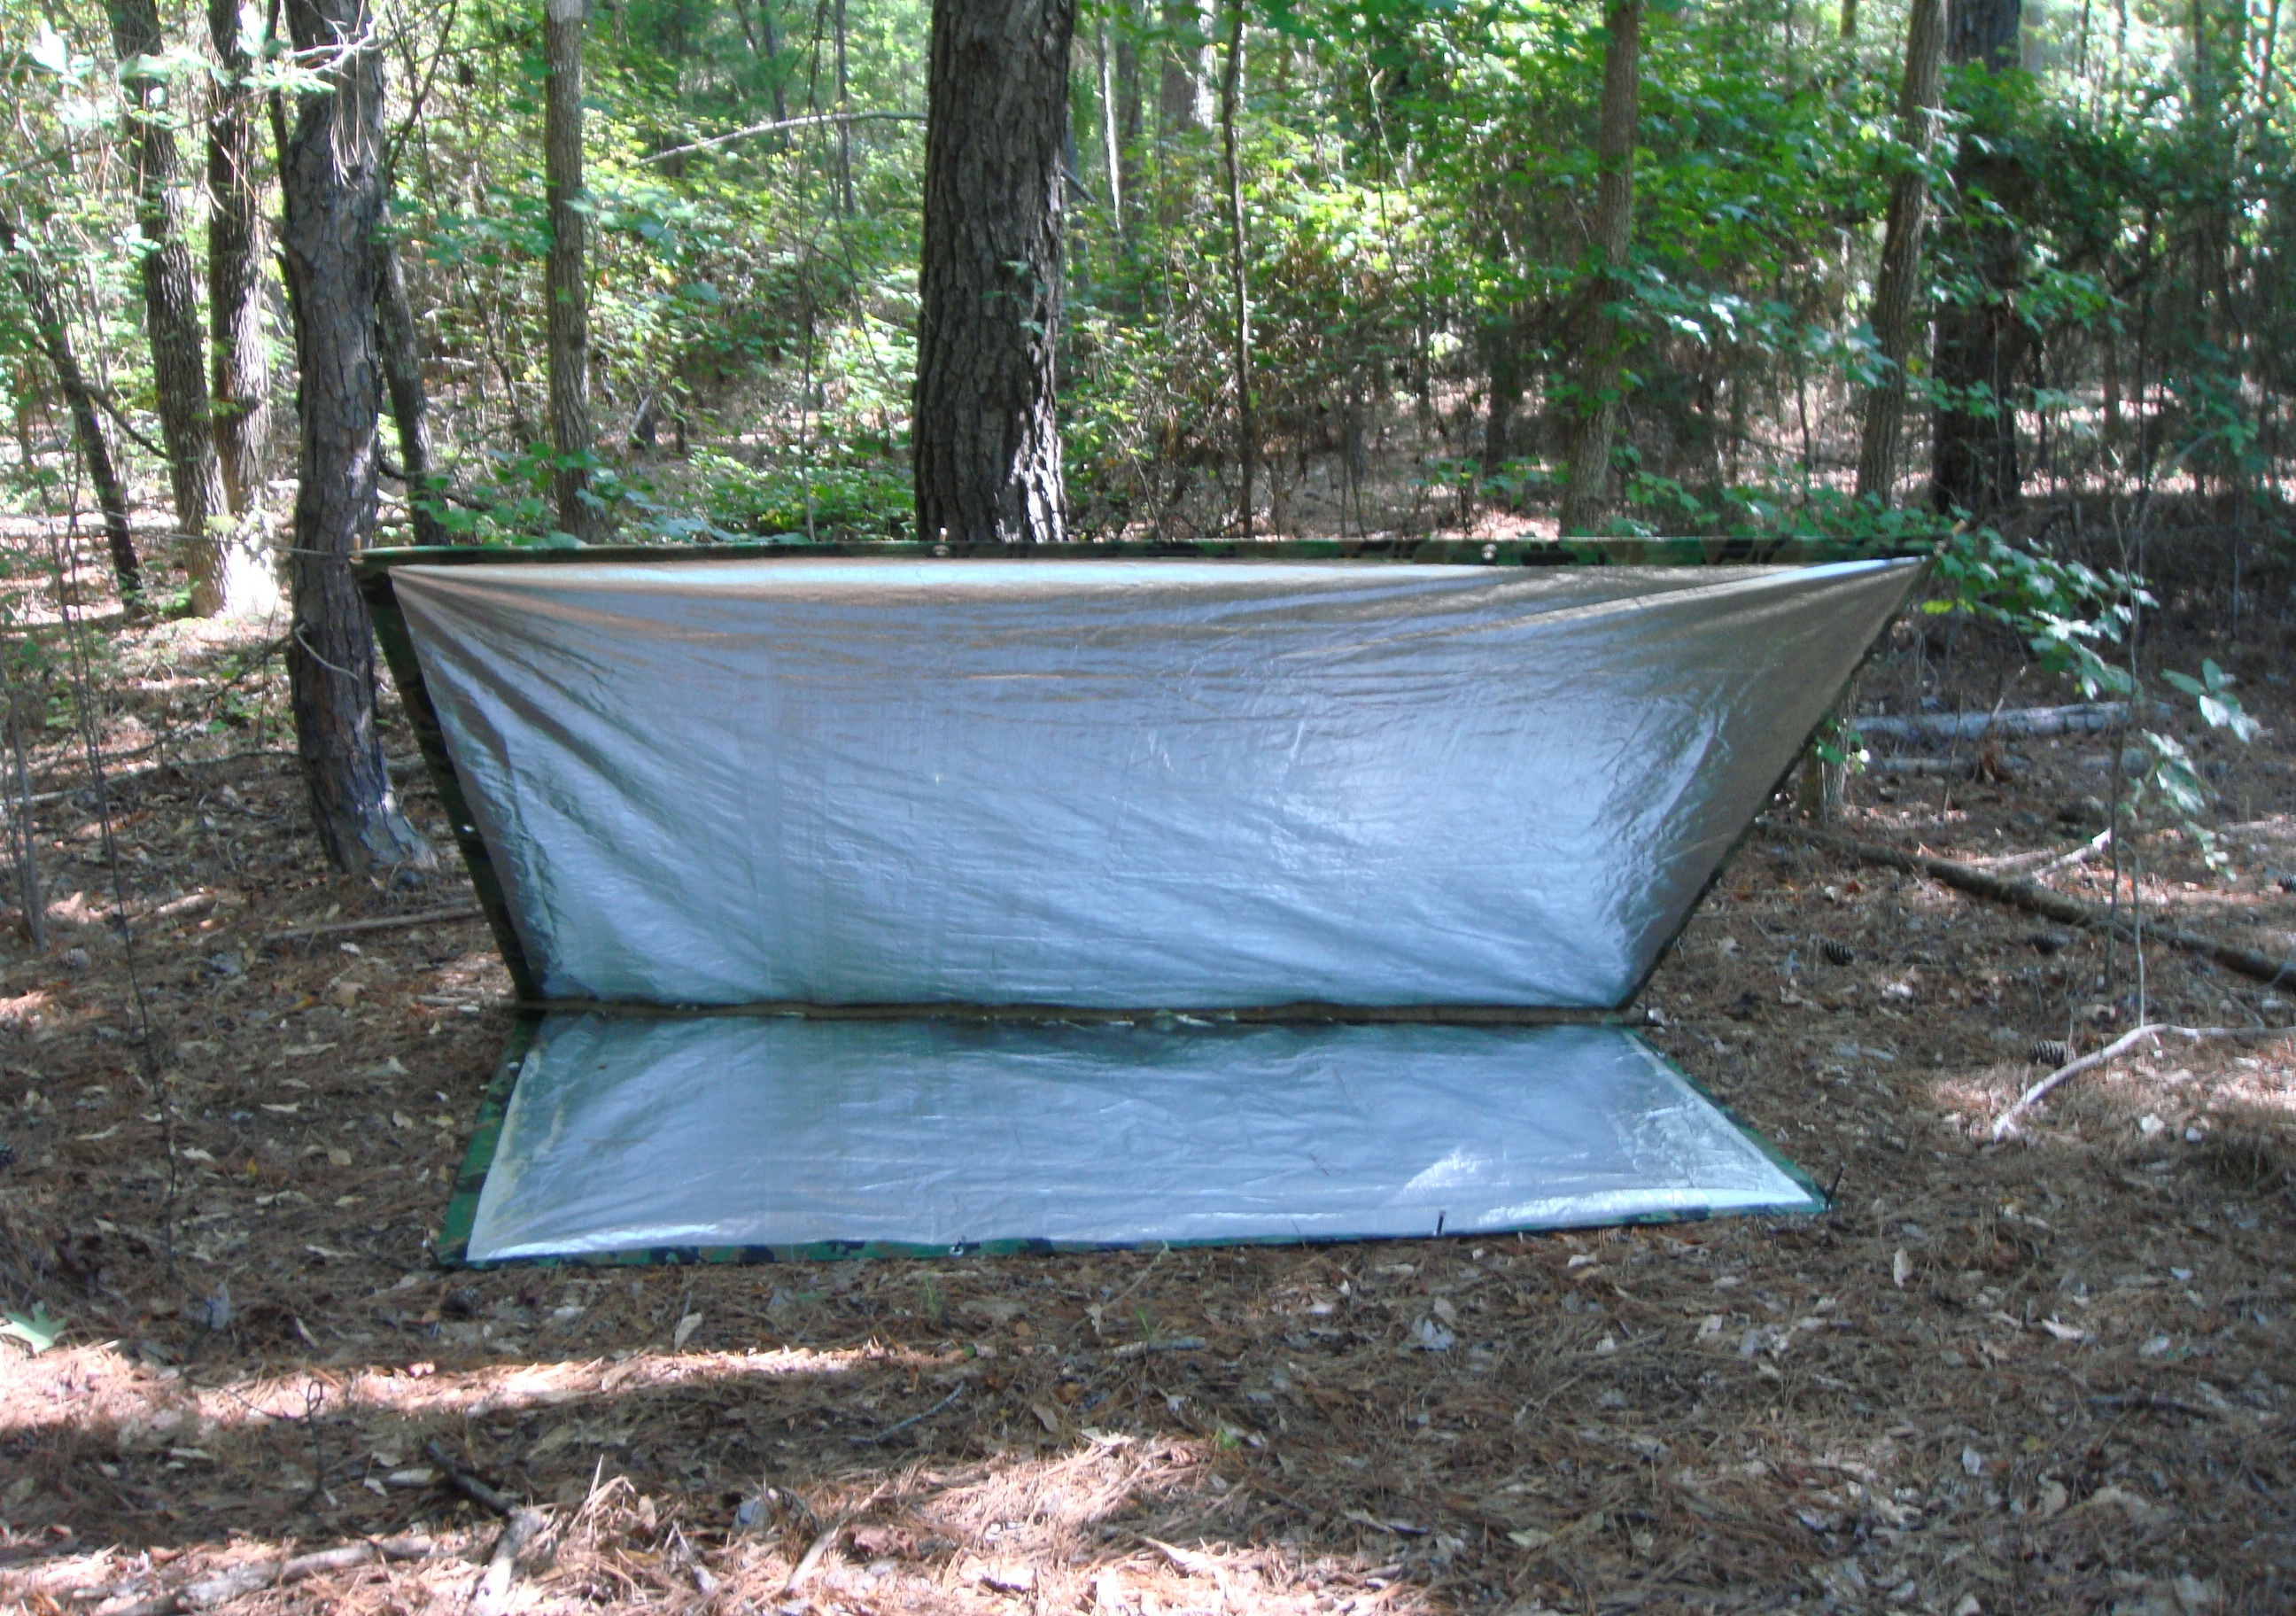 This is not really a new idea. I can recall Mors Kochanski advocating for this quite a few years ago when he developed his concept of the u201csuper shelter. & Make an Inexpensive Reflector Tarp for a Warm Survival Shelter ...